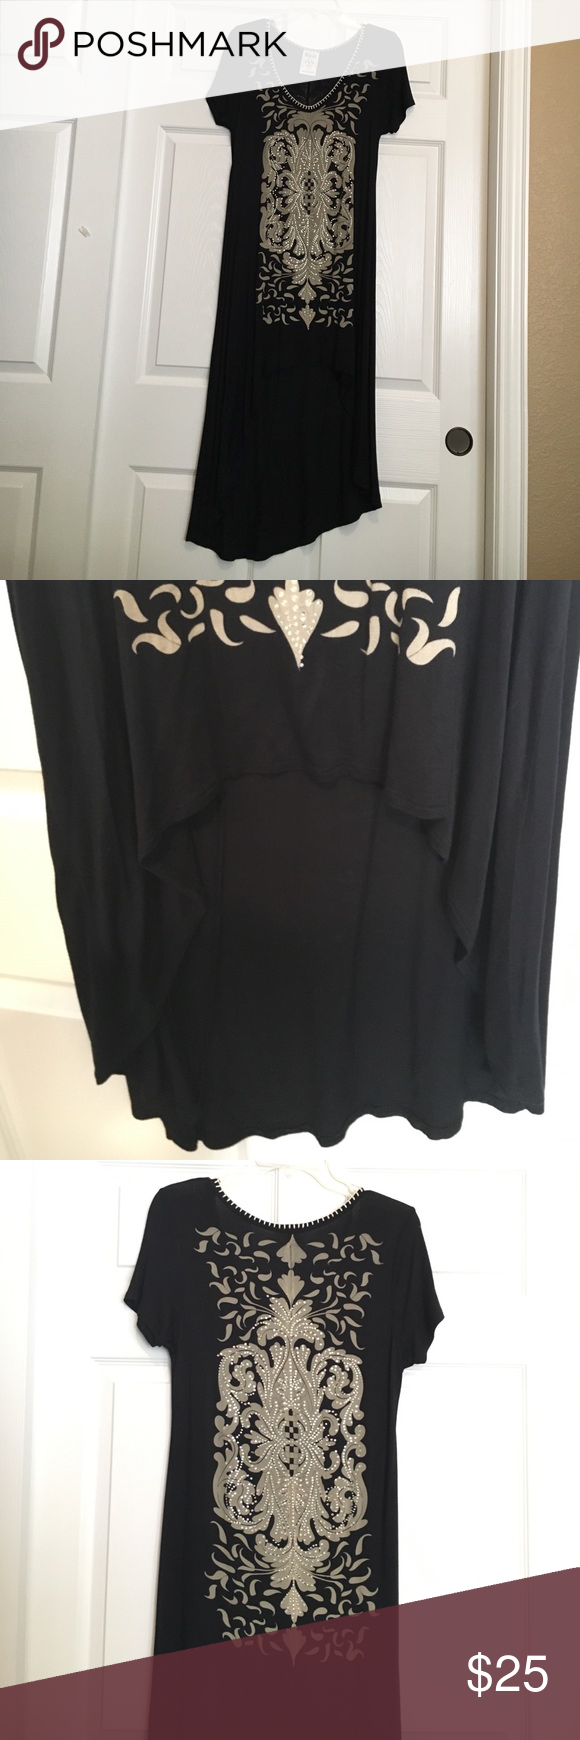 Black dress with rhinestones shorts customer support and delivery